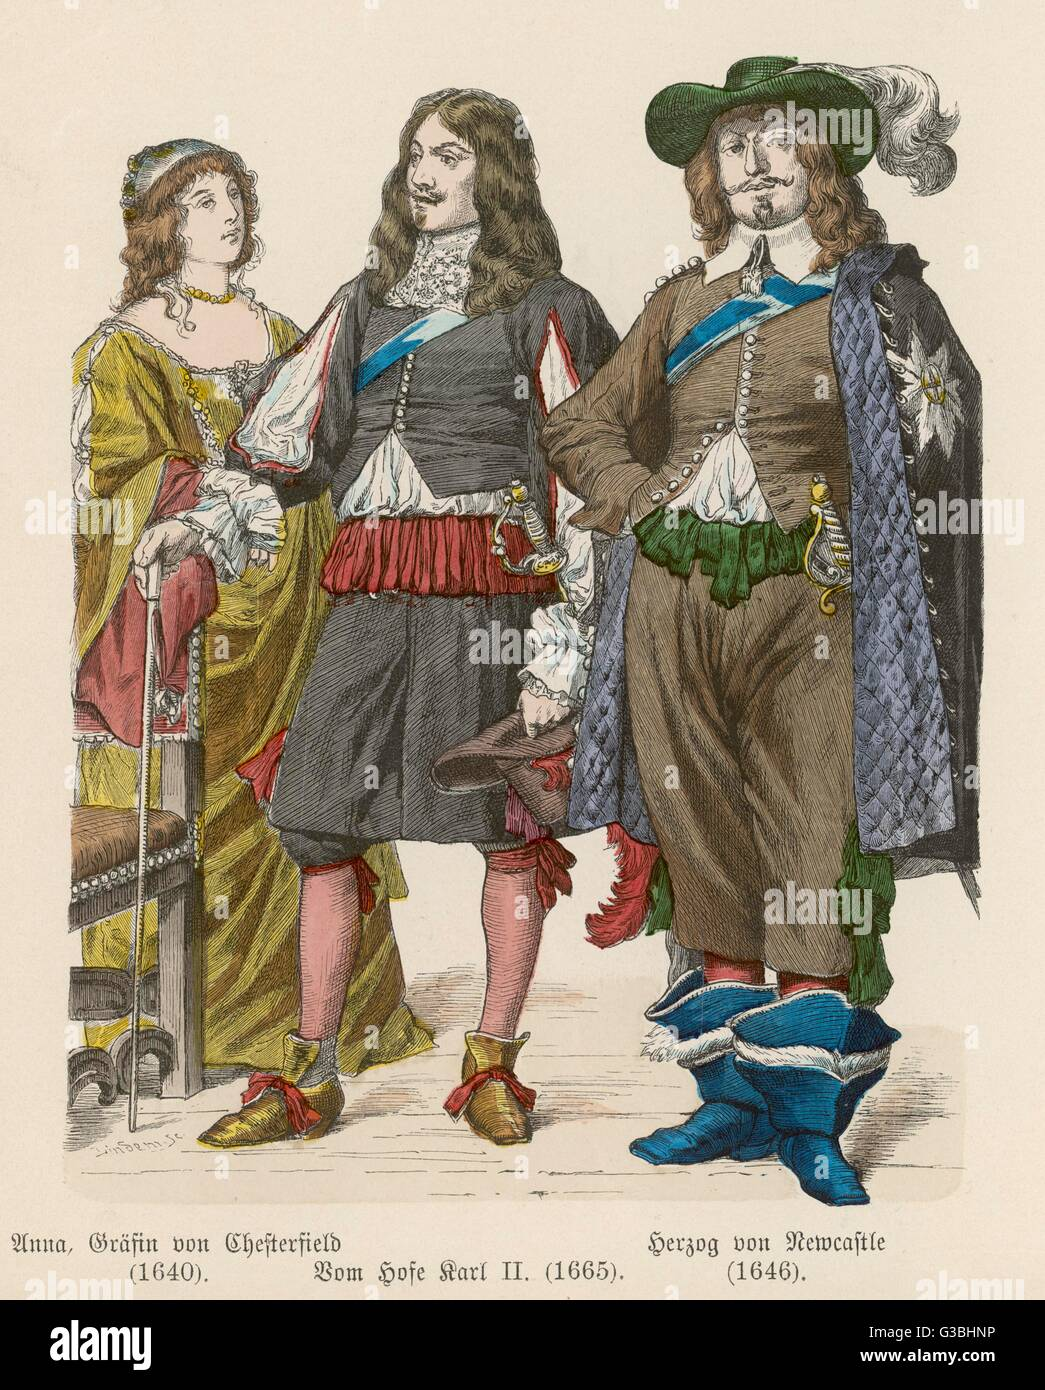 Duke of Newcastle: breeches  trimmed with ribbon loops,  bucket-top boots & cloak.  Charles II: petticoat - Stock Image